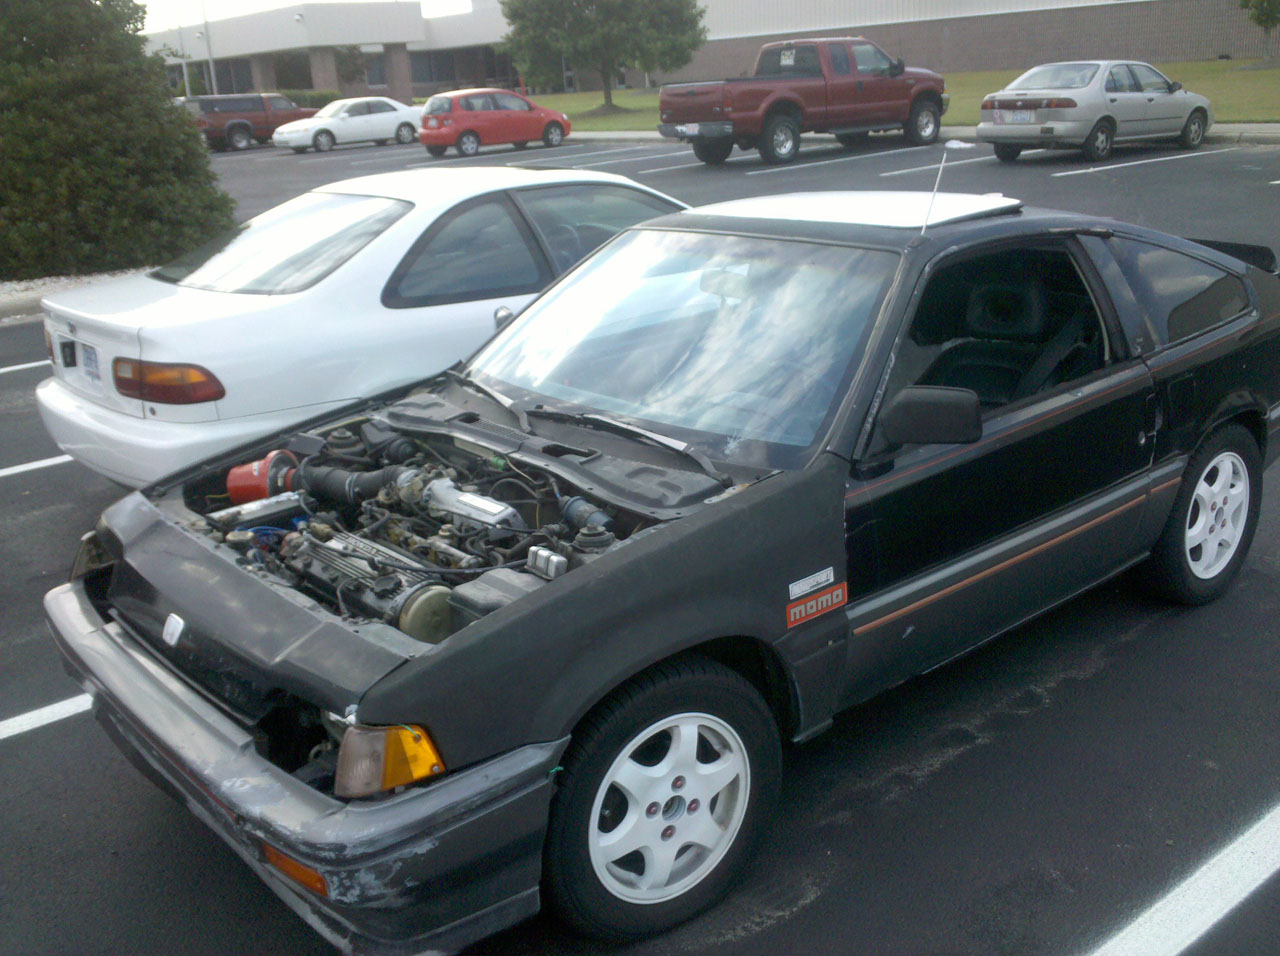 1985 Honda Civic CRX si